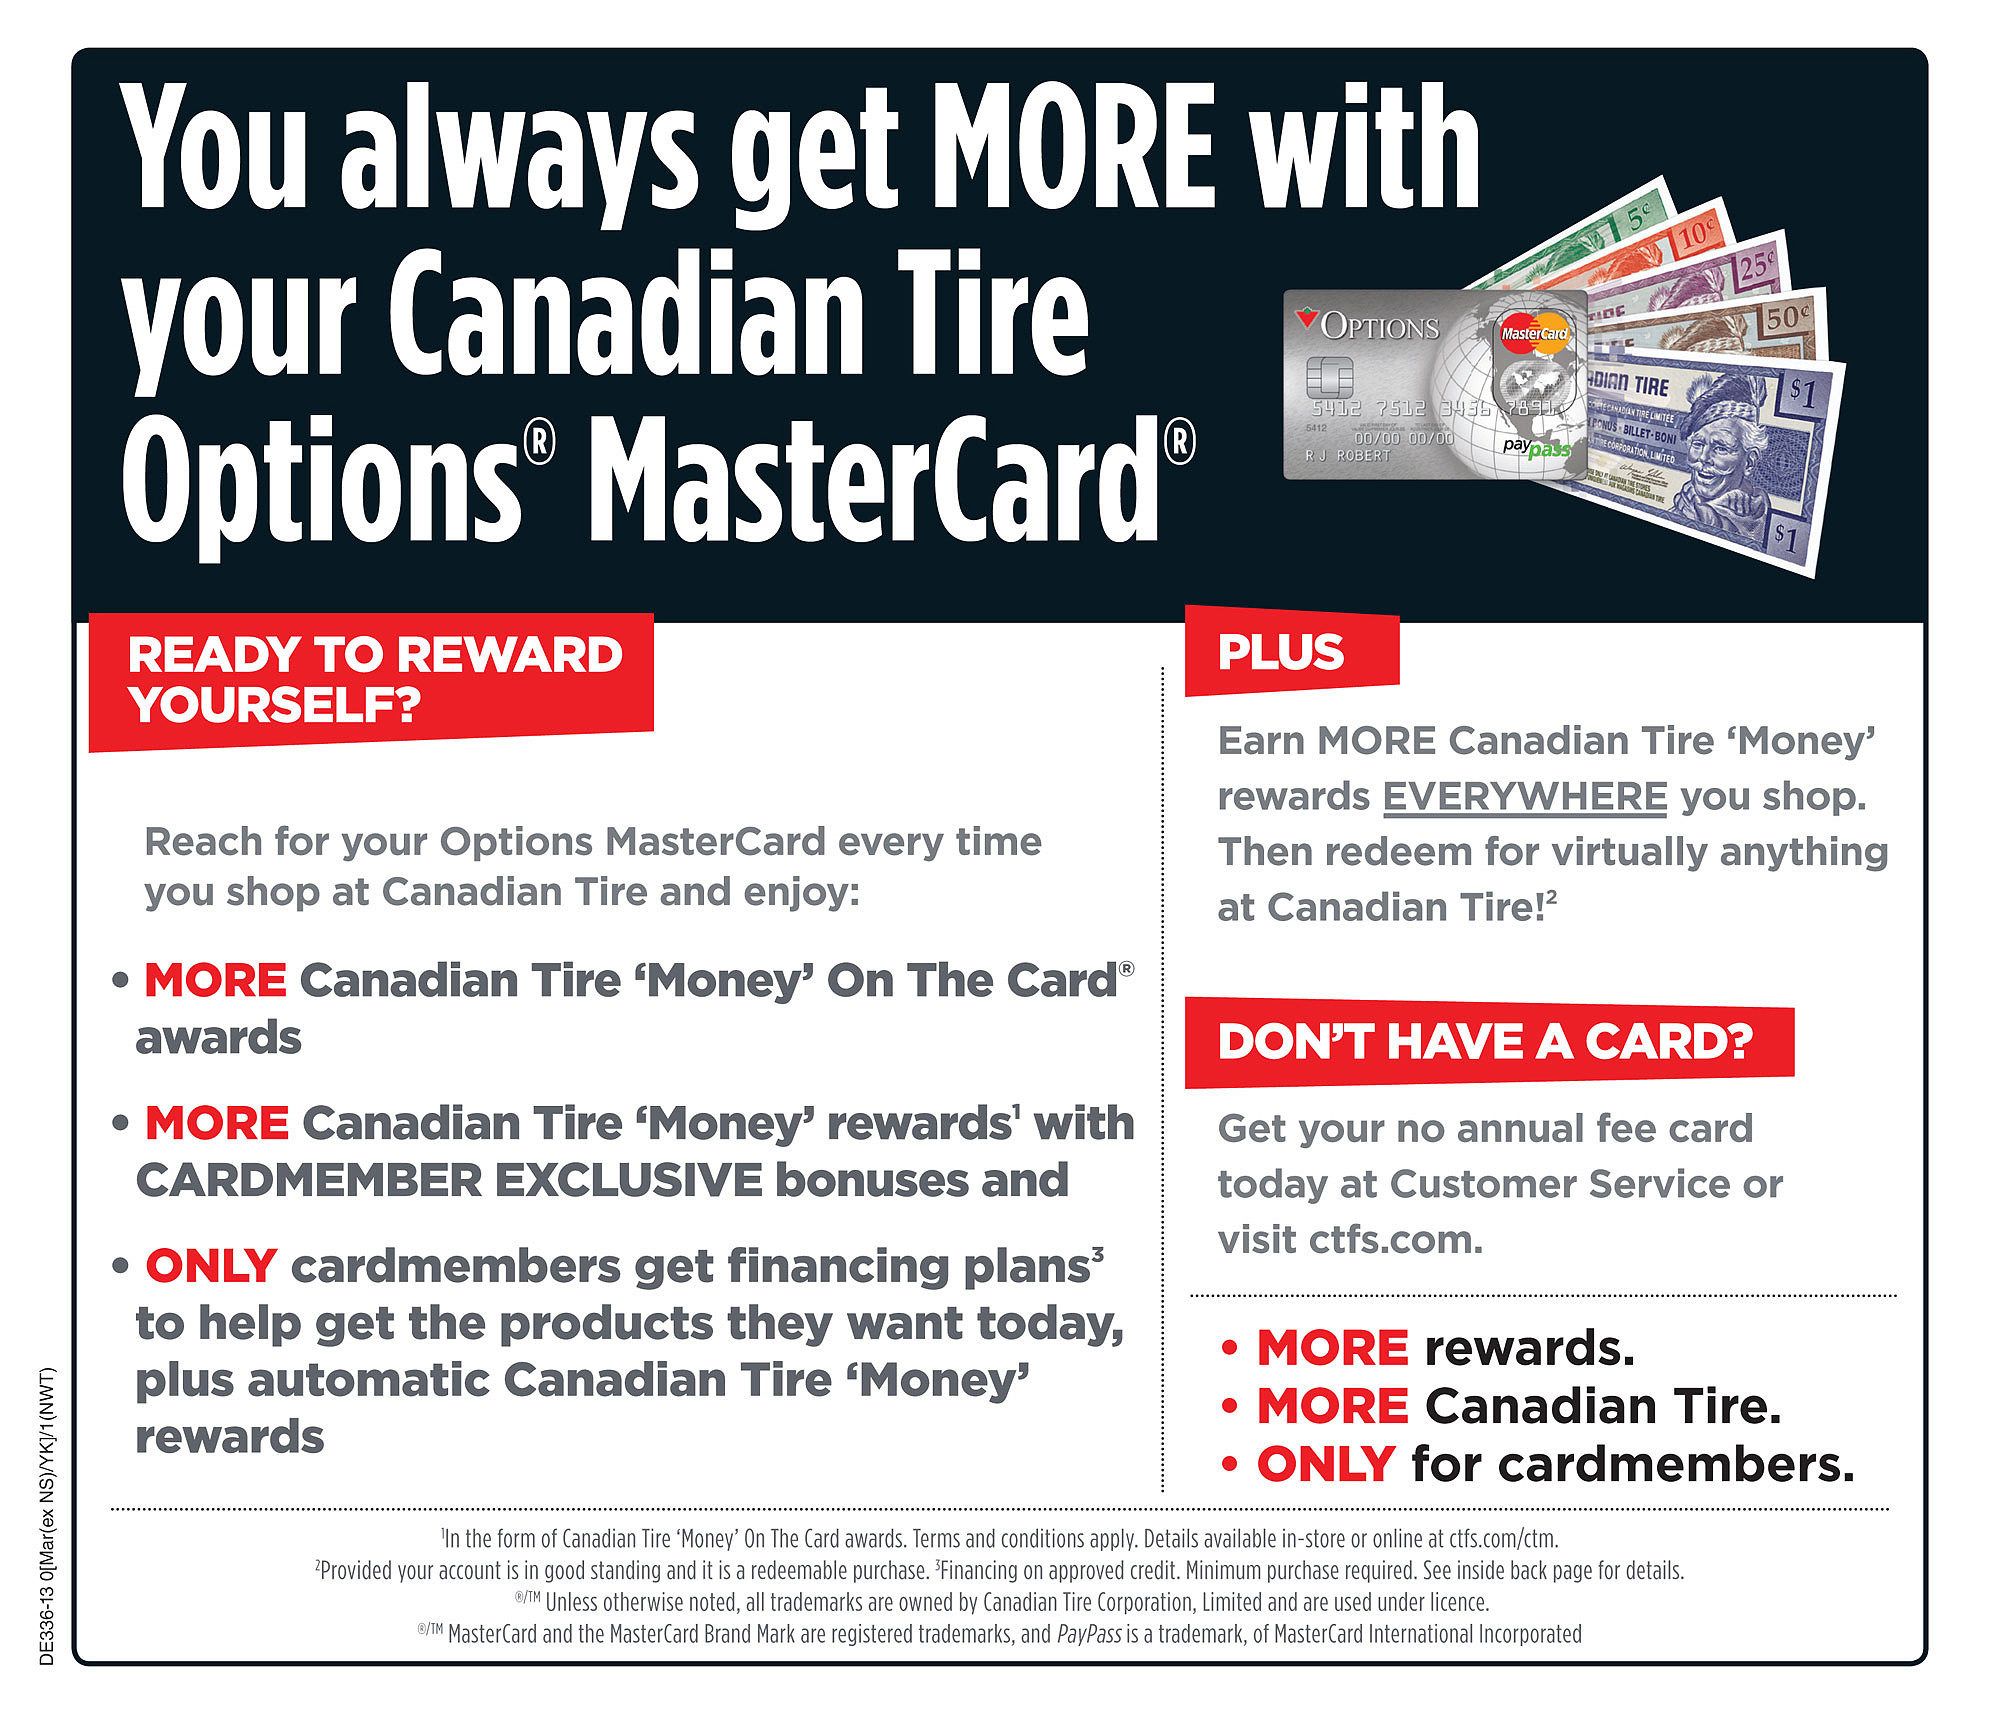 Canadian Tire Weekly Flyer Weekly Flyer Aug 29 – Sep 5 #0: original